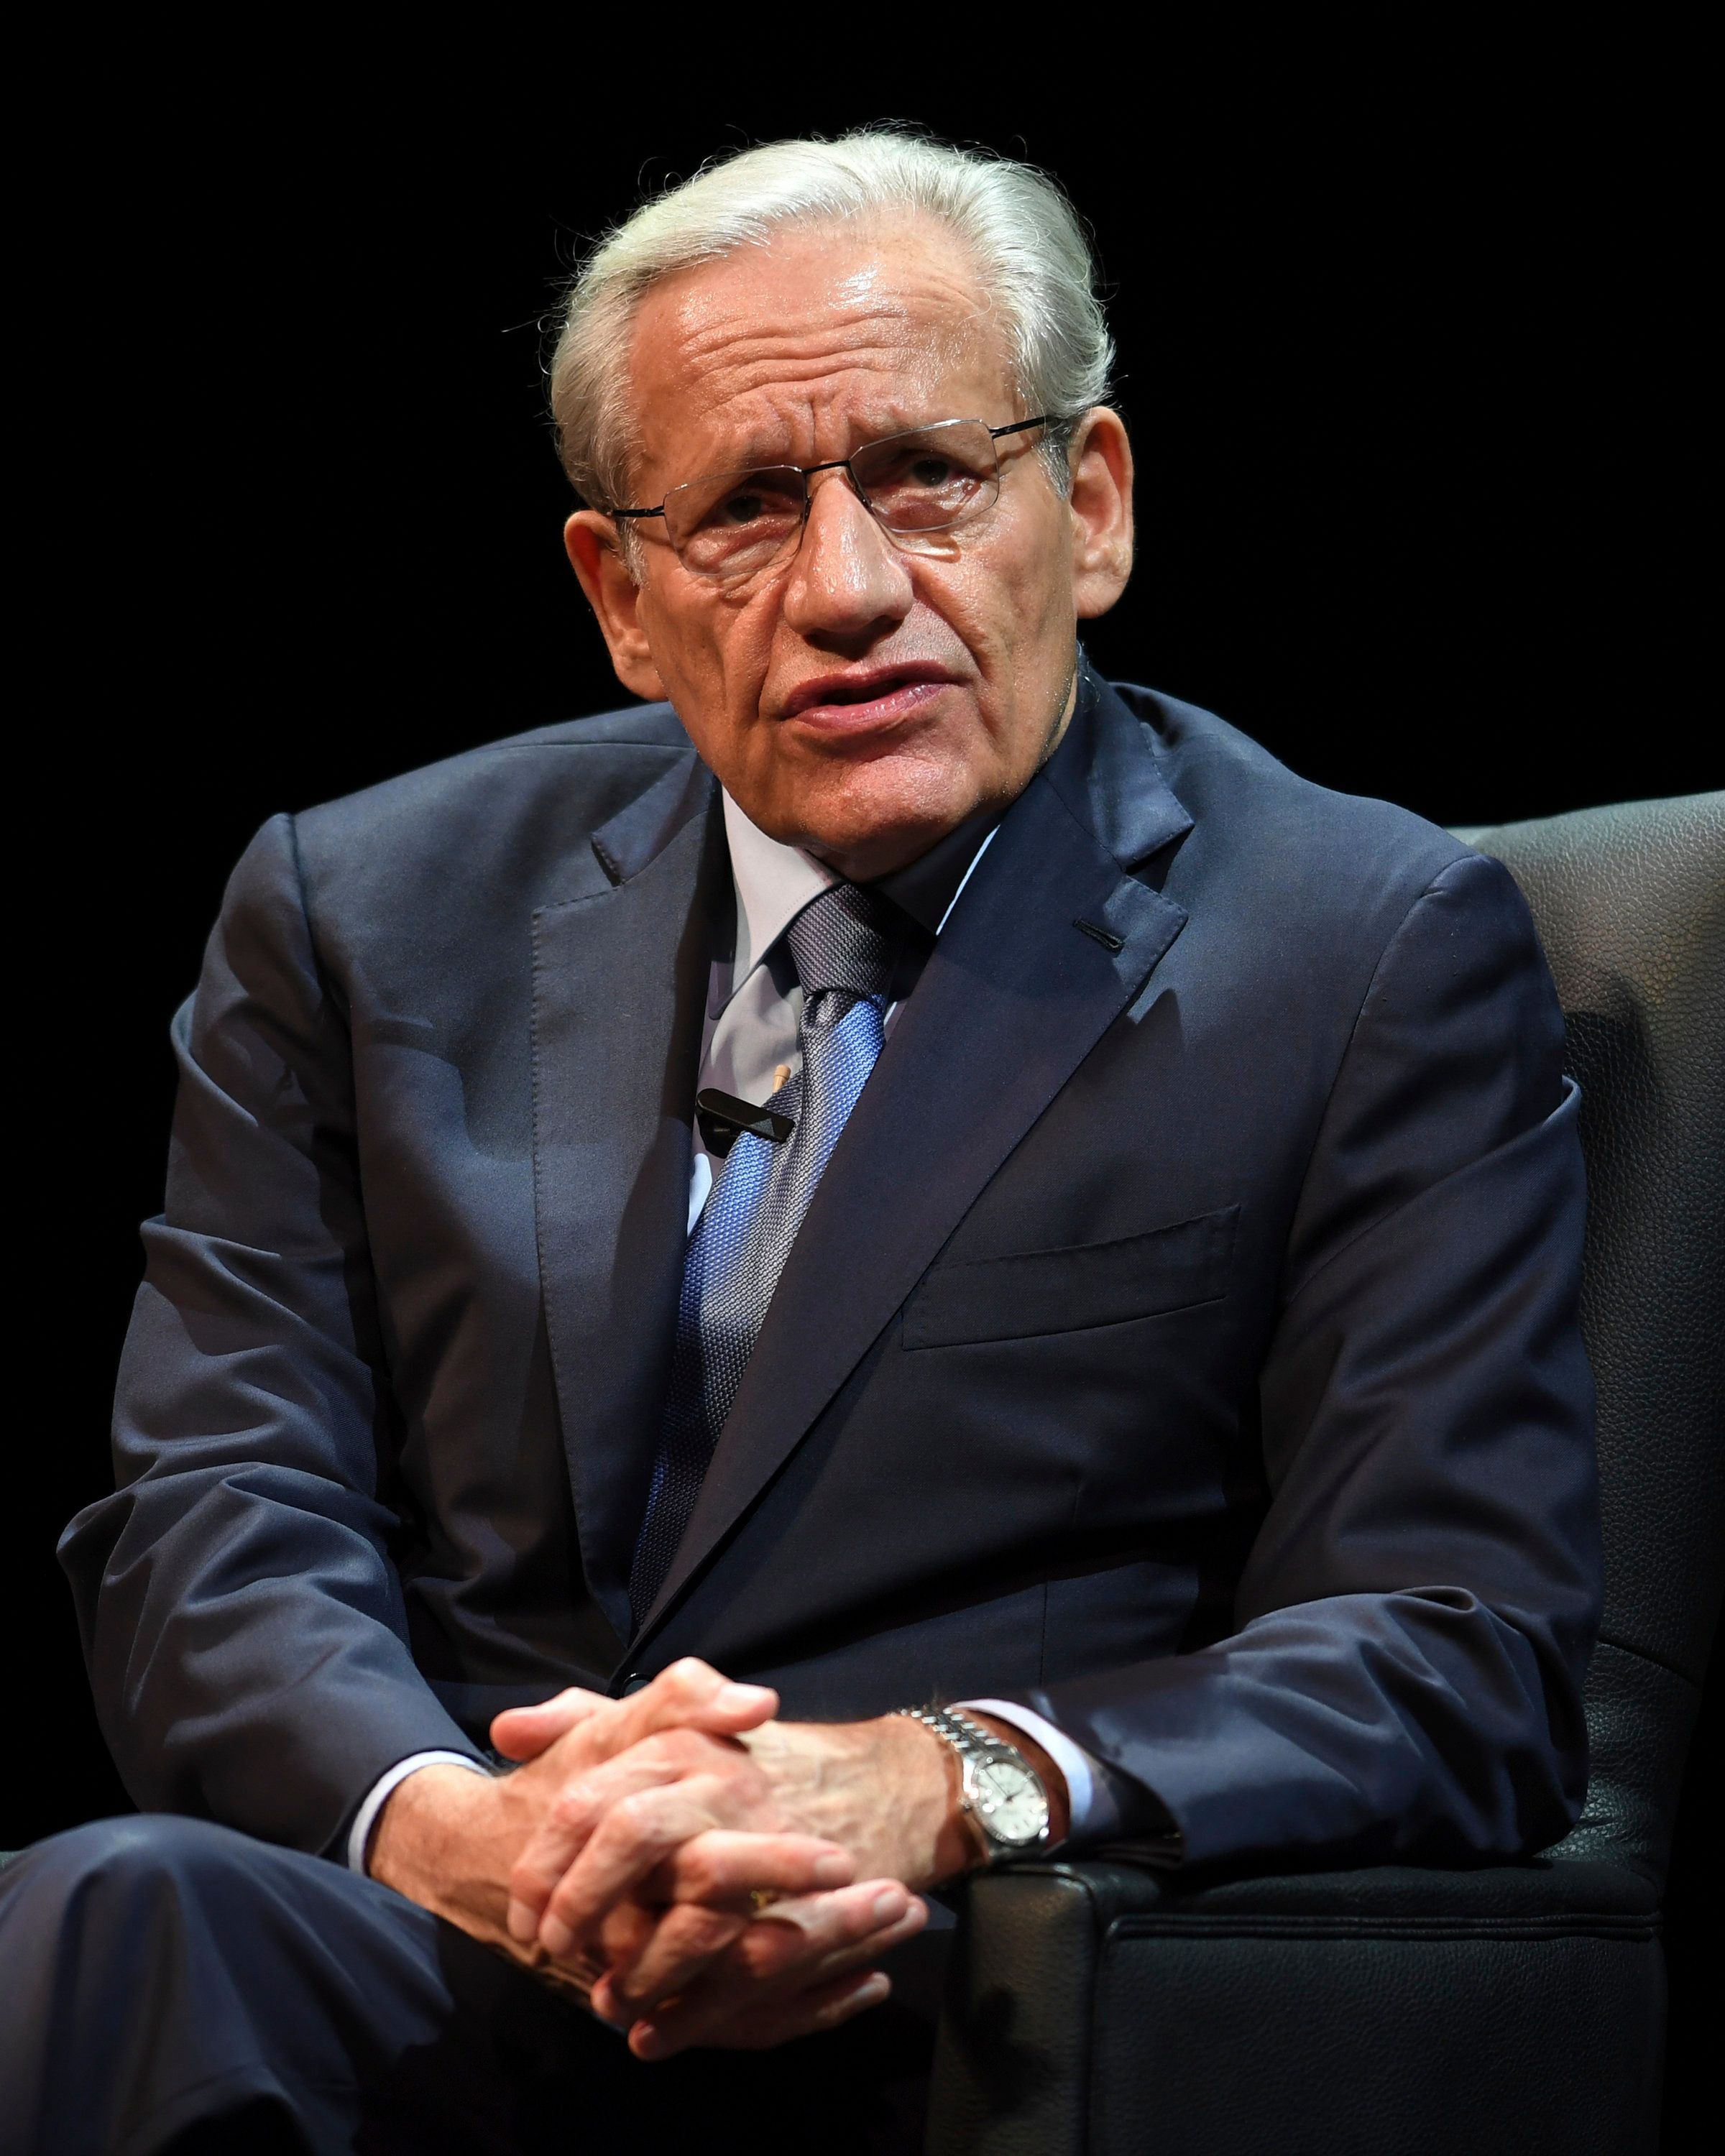 Bob Woodward: The Media Has Become 'Emotionally Unhinged' About Trump thumbnail